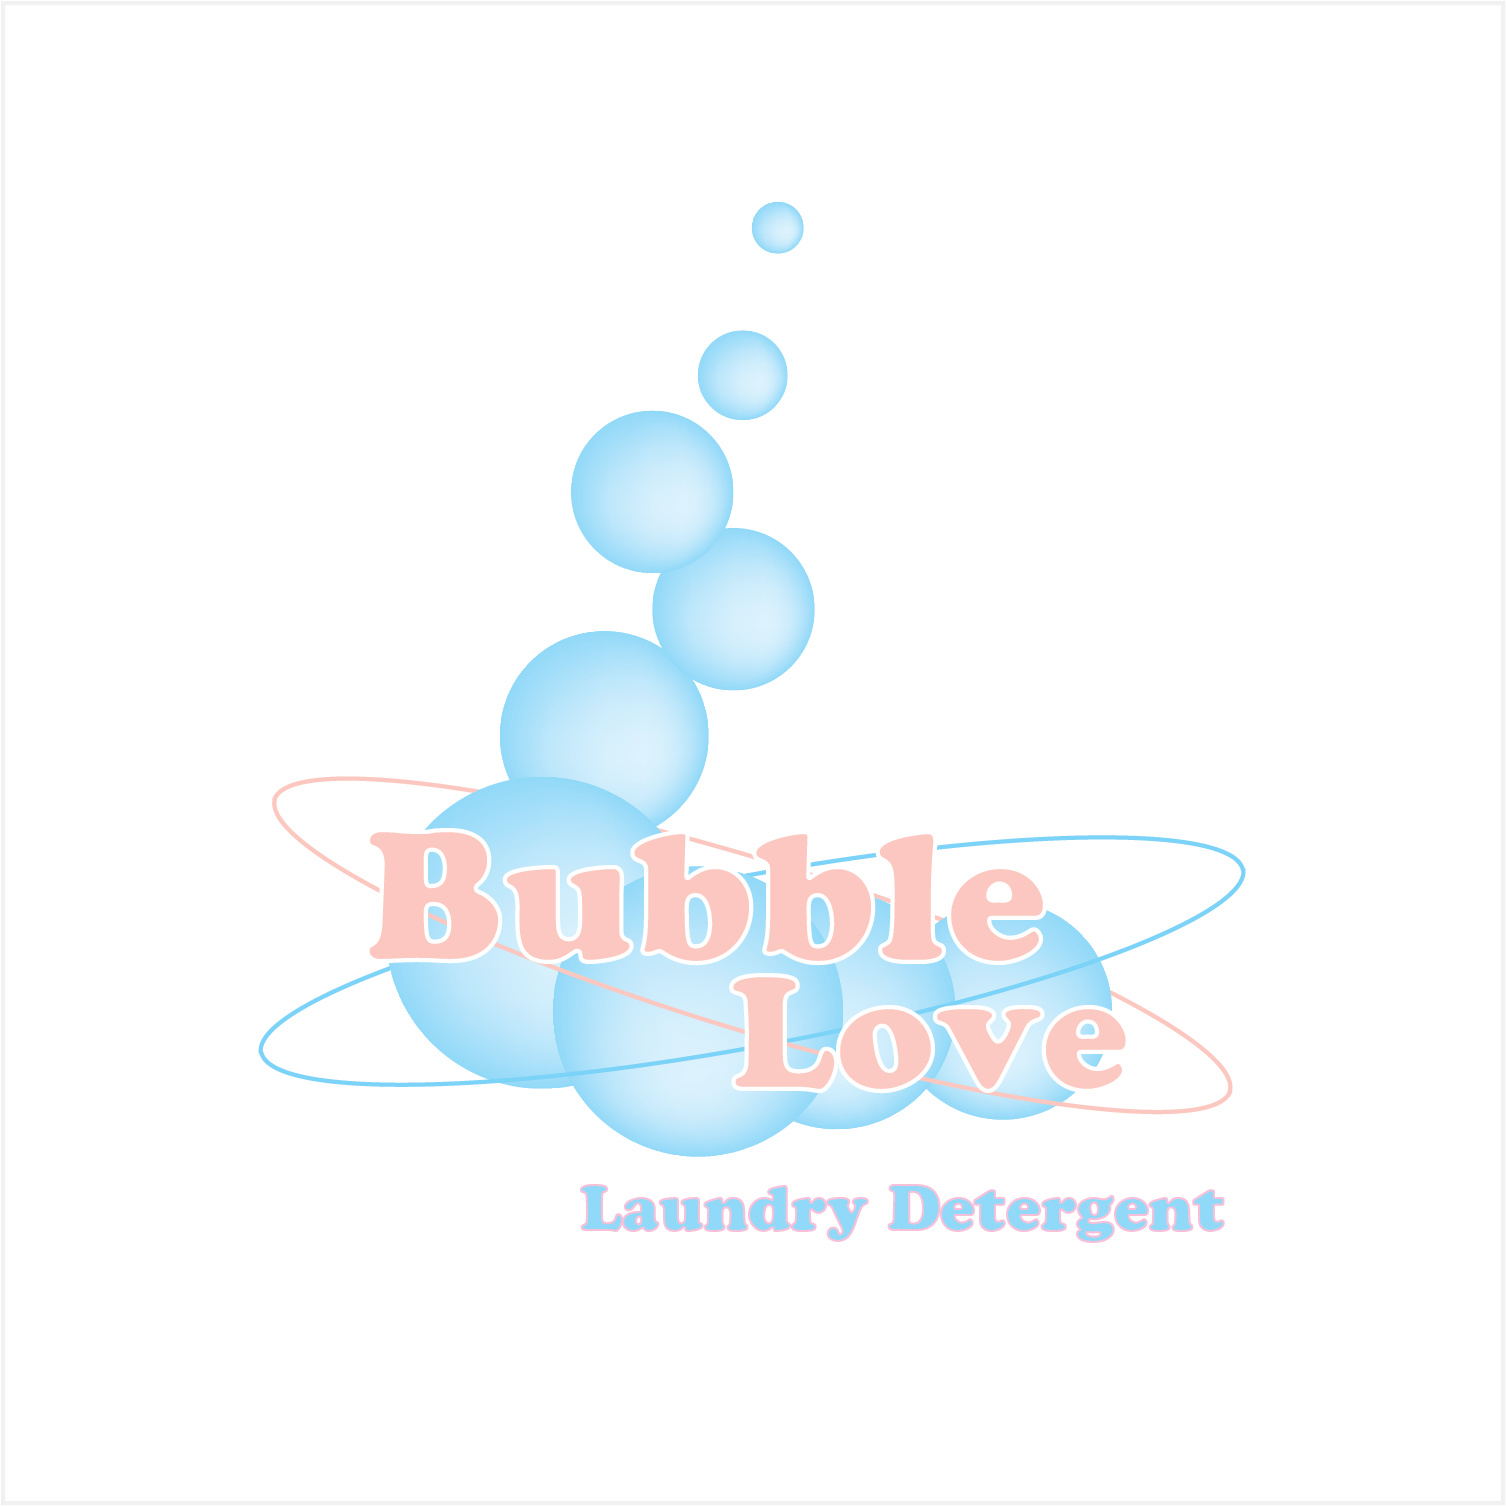 Bubble Love Laundry Detergent